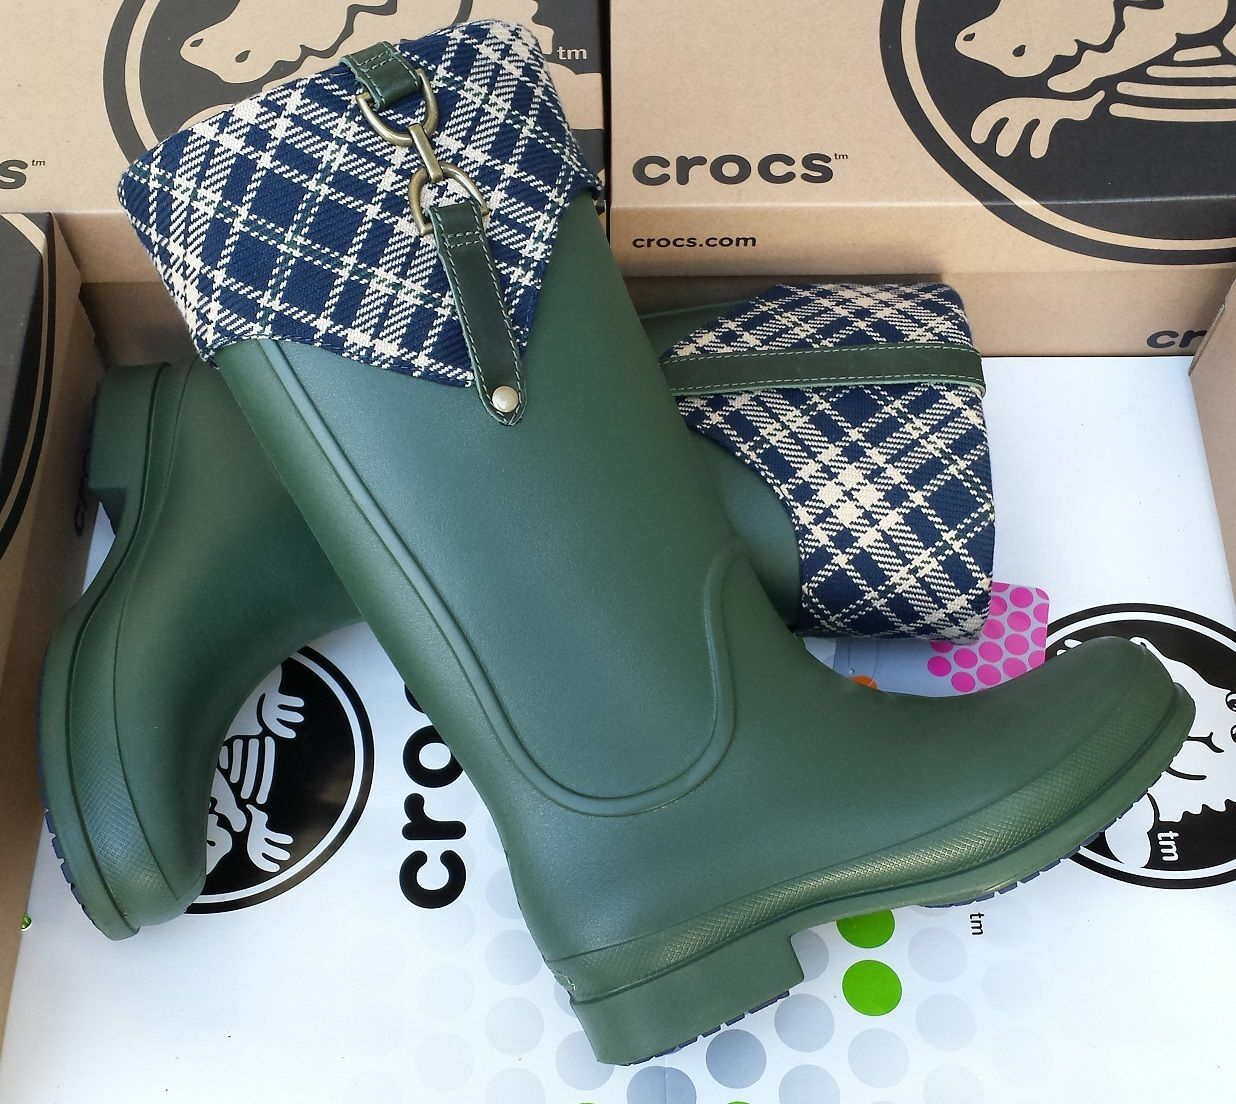 CROCS BRIDLE WELLIE PLAID JAUNT GEORGIE RAIN BOOTS SHOE~Green Blue~Women 11~NWT